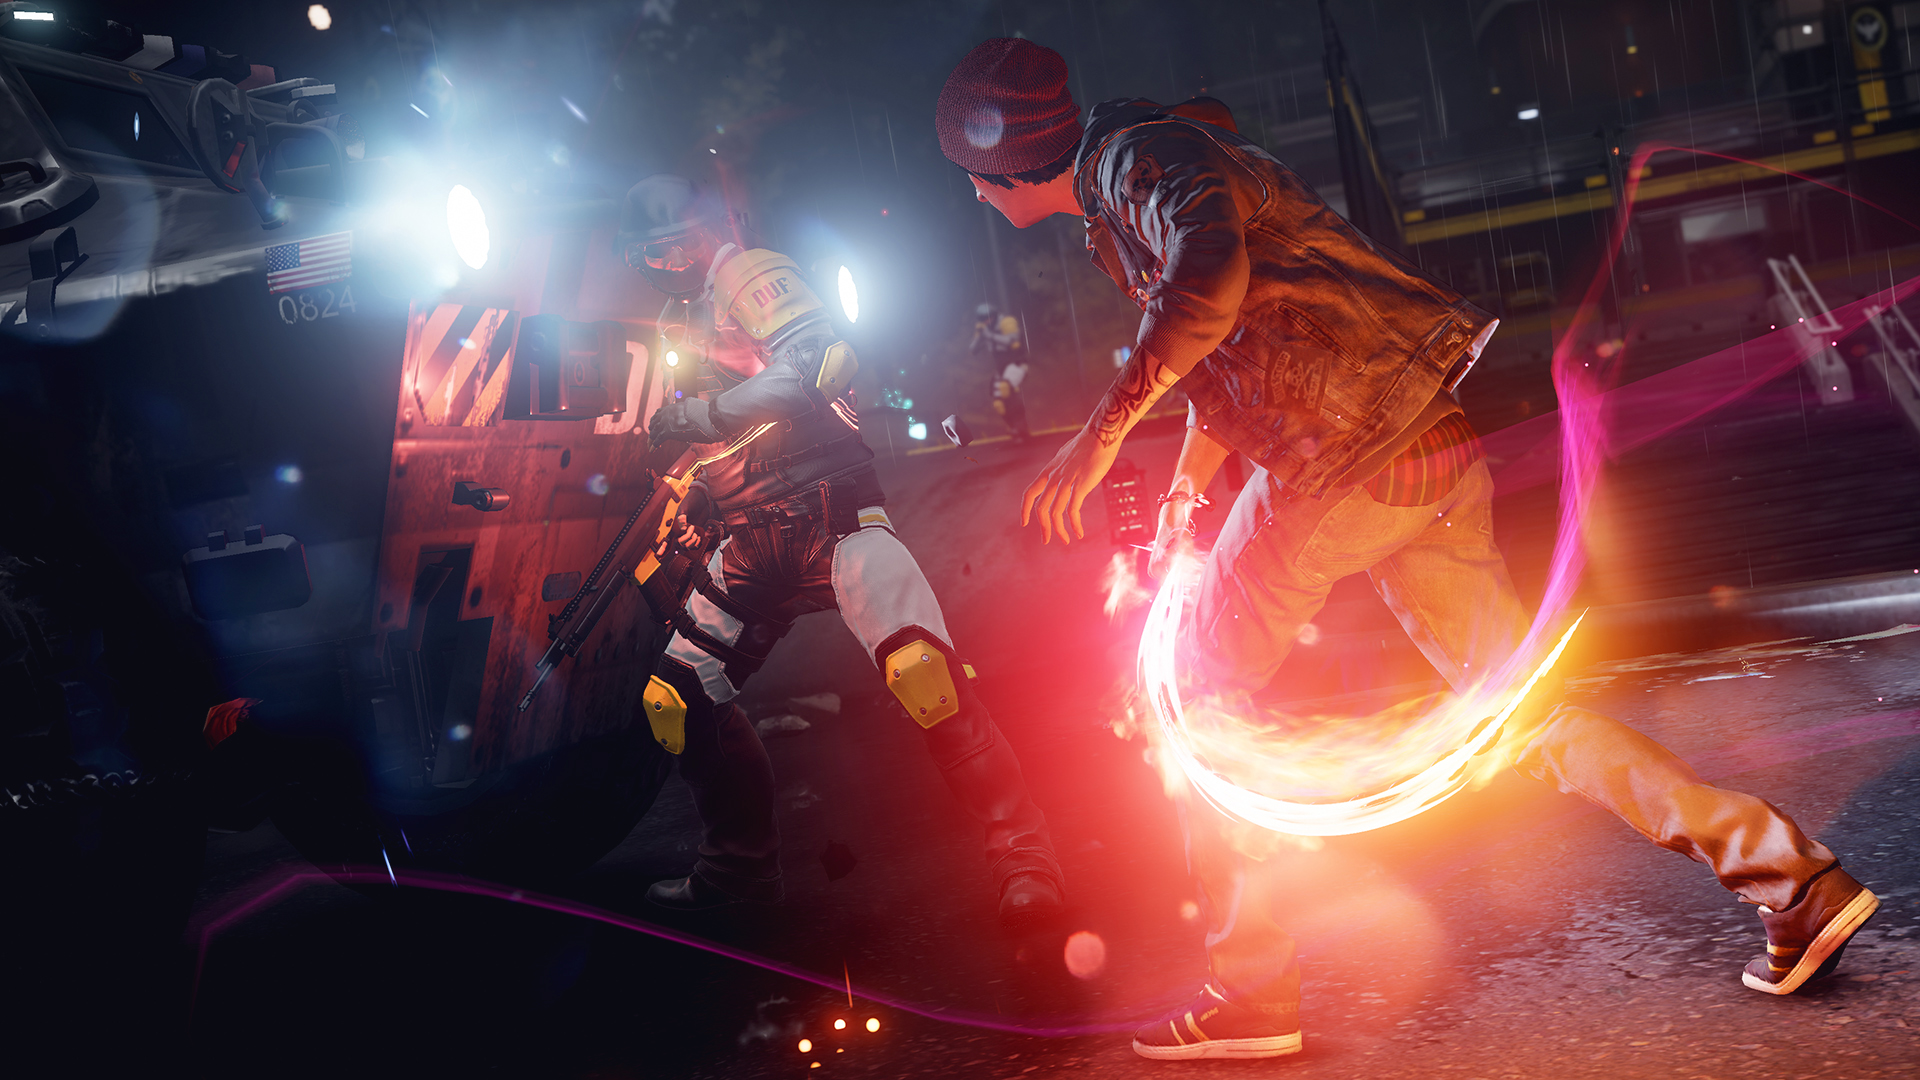 file_7775_inFAMOUS_Second_Son-Bright_Lights_86_139532236728129